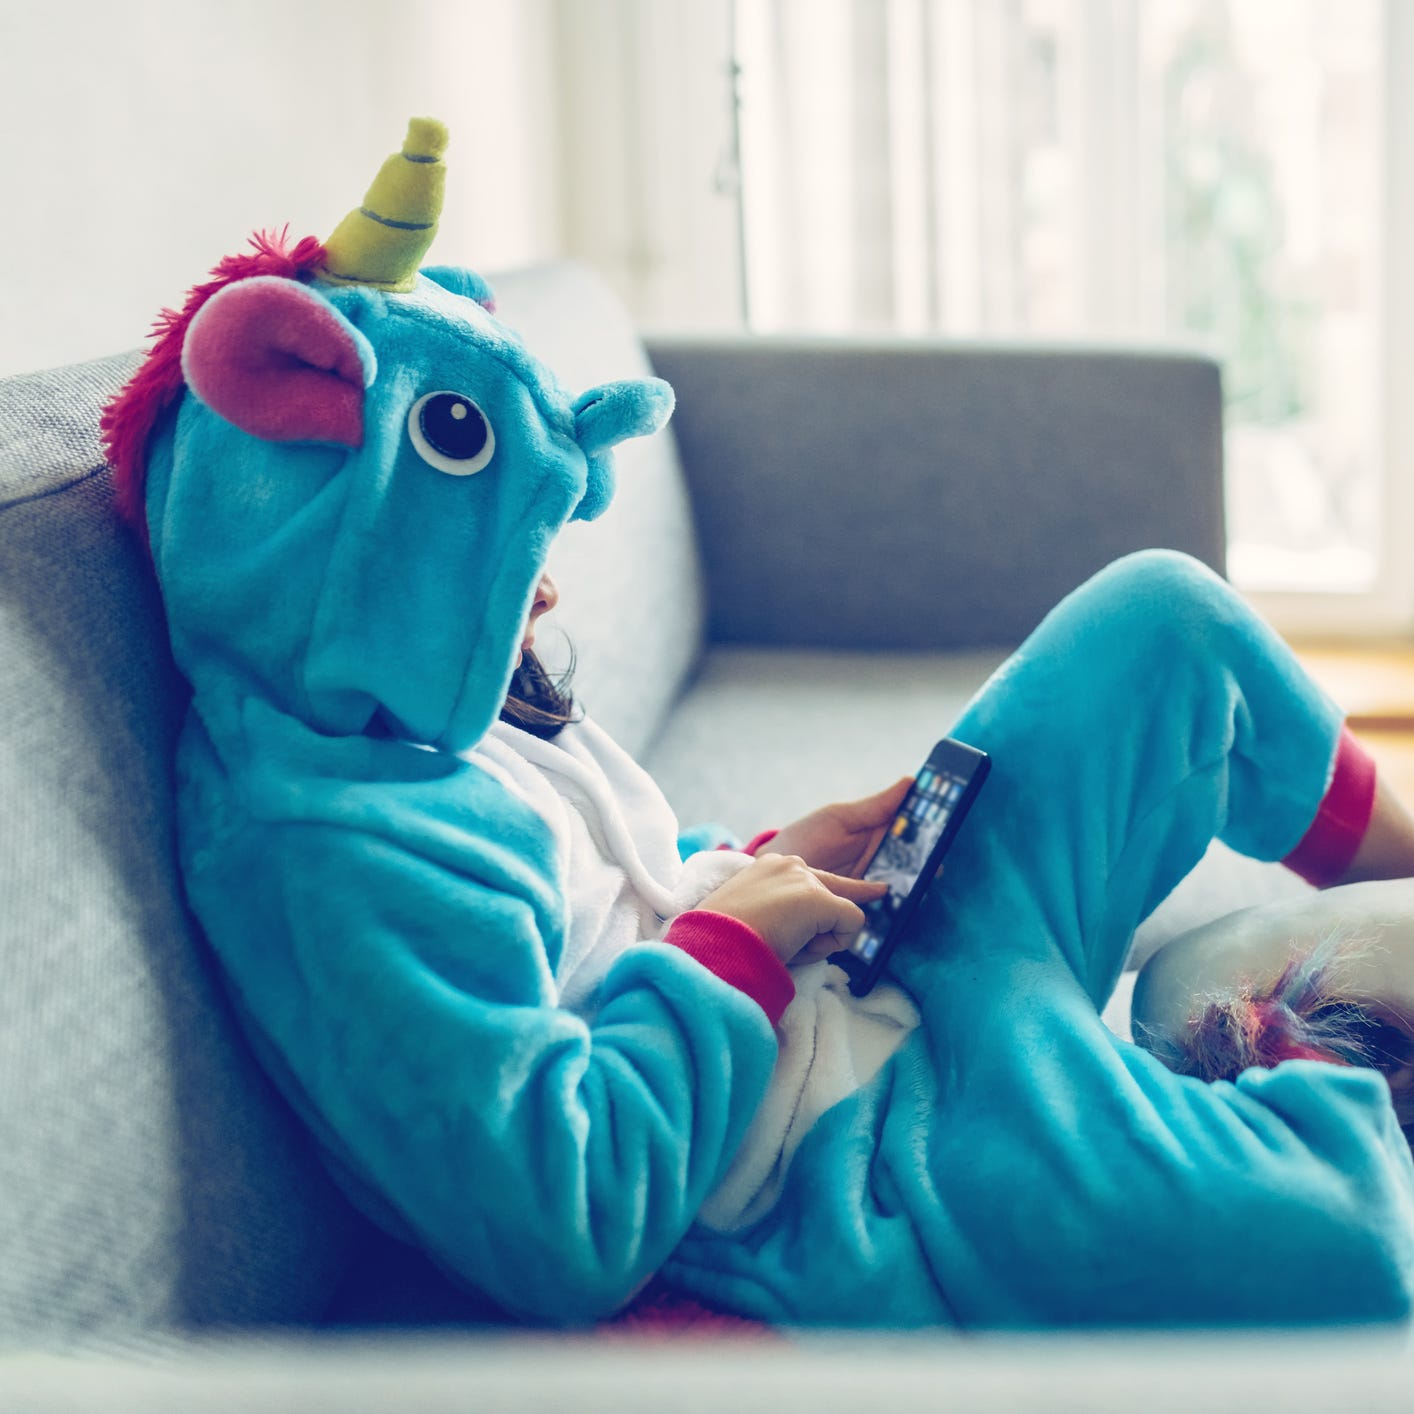 little girl in unicorn costume relaxing with mobile on couch at home